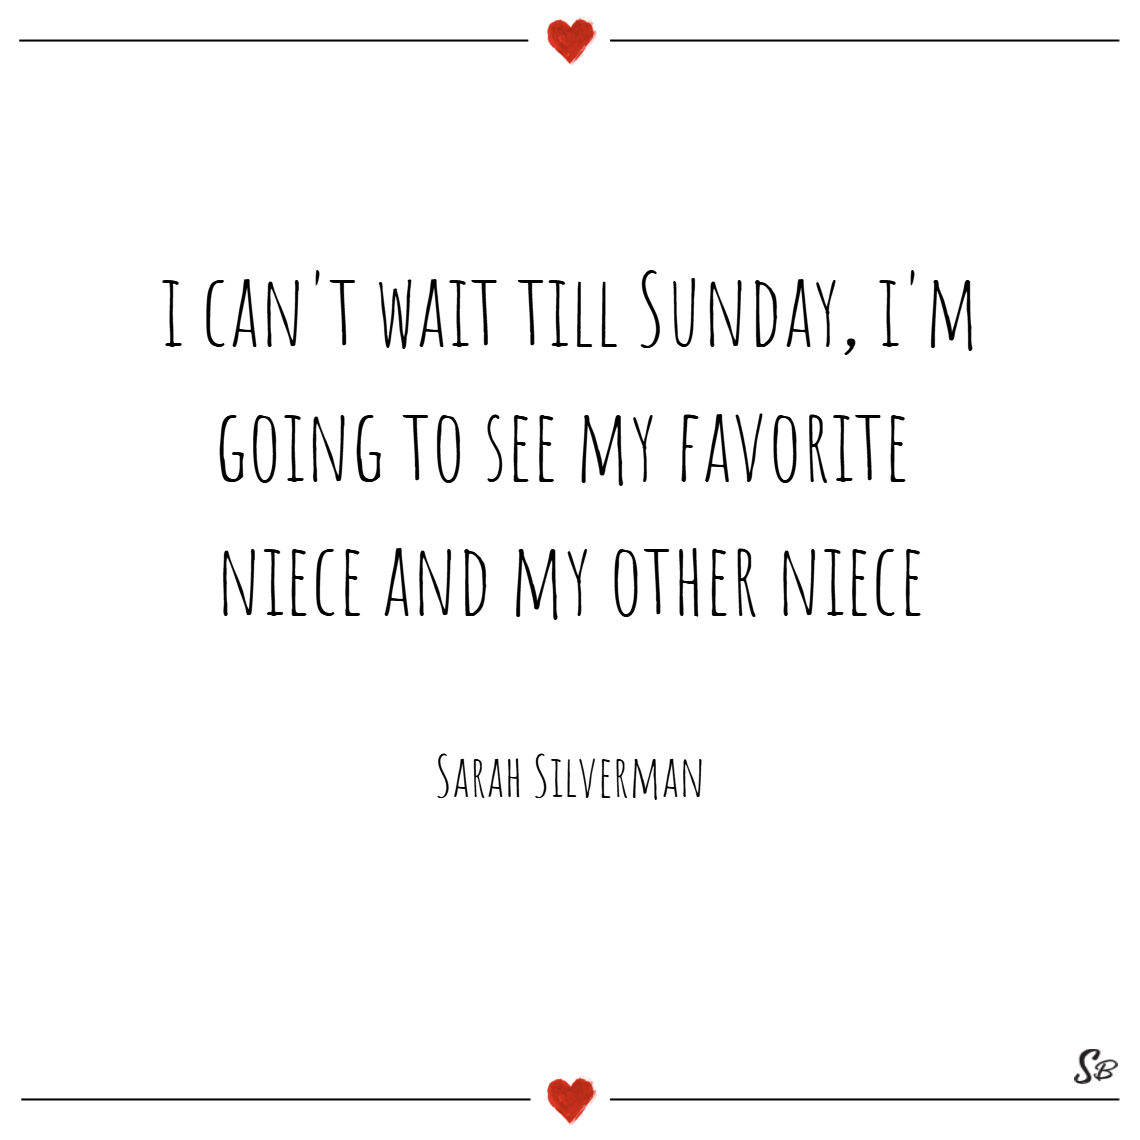 I can't wait till sunday, i'm going to see my favorite niece and my other niece. – sarah silverman